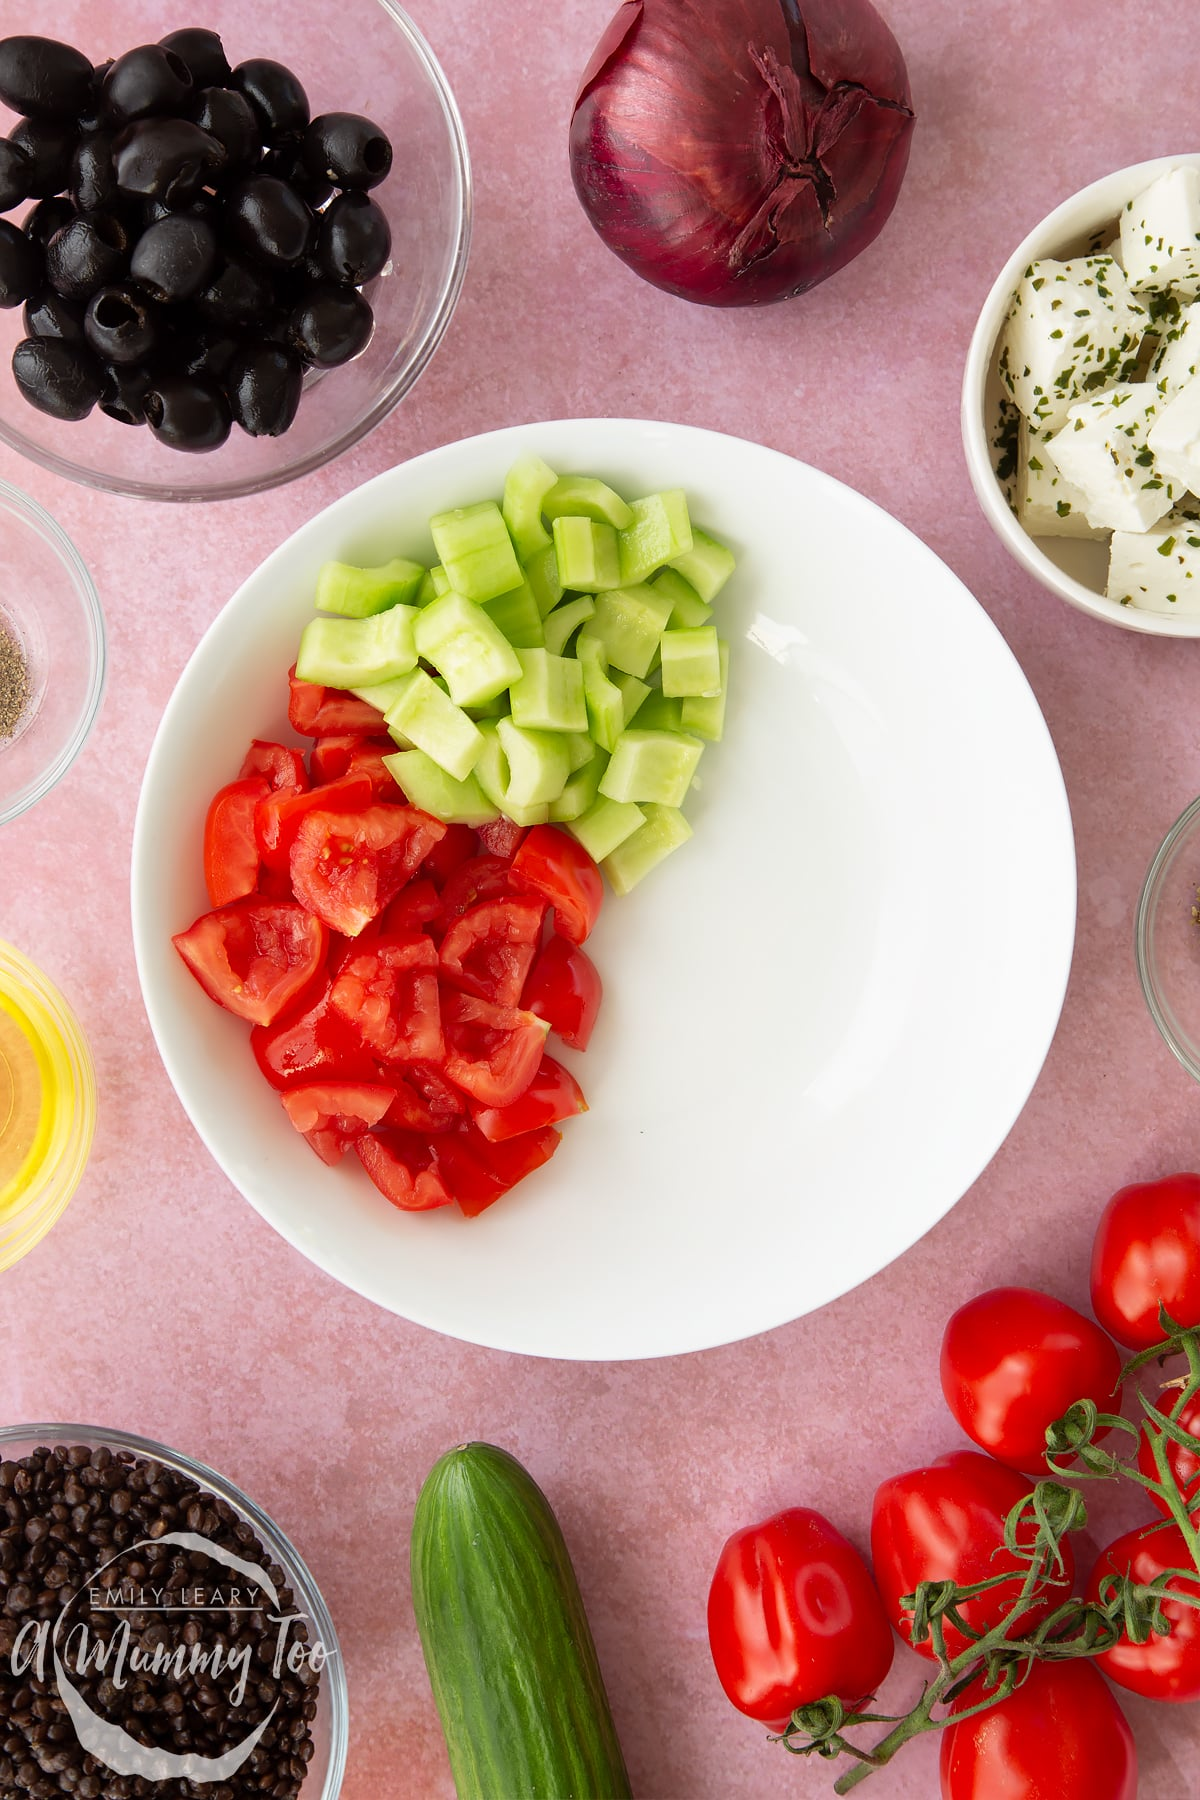 A white bowl containing chopped tomatoes and cucumber. Ingredients to make Greek lentil salad surround the bowl.